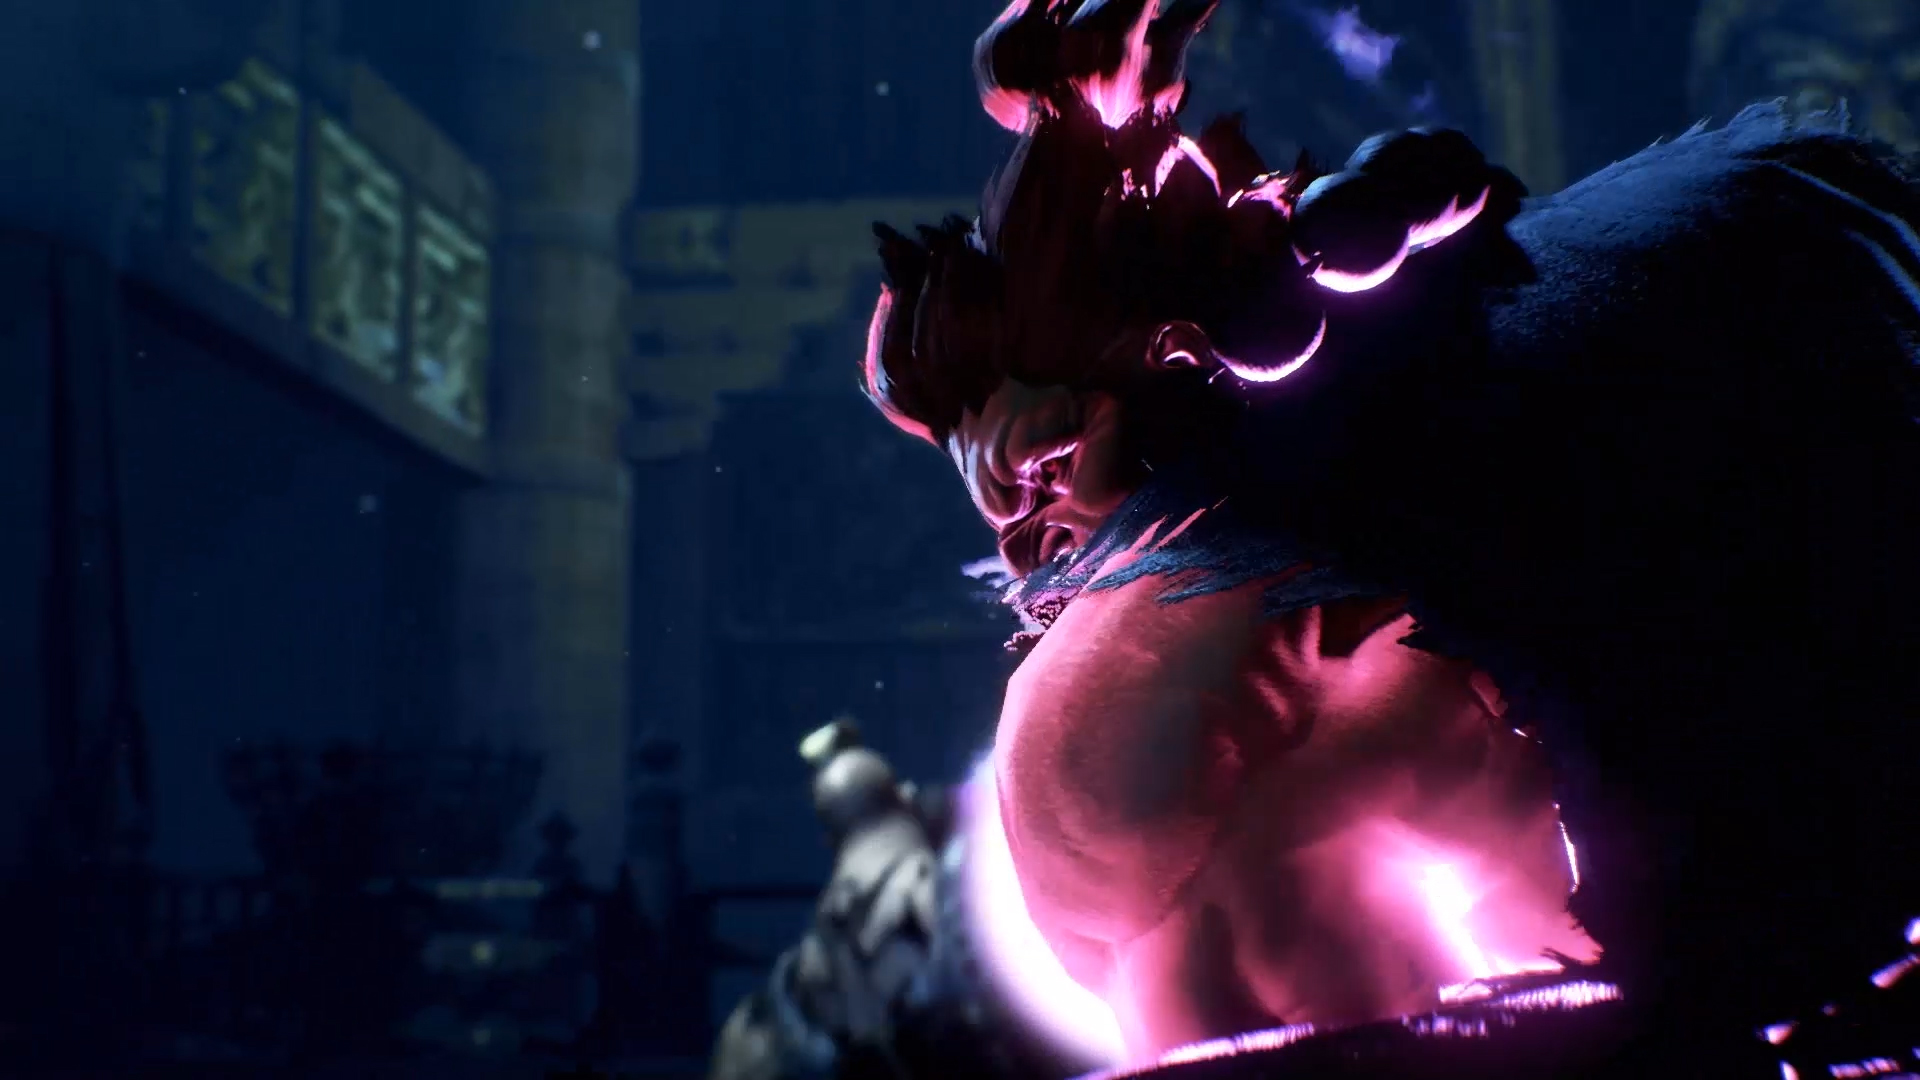 Seven Tekken 7 Tips For Beginners - How To Become King of